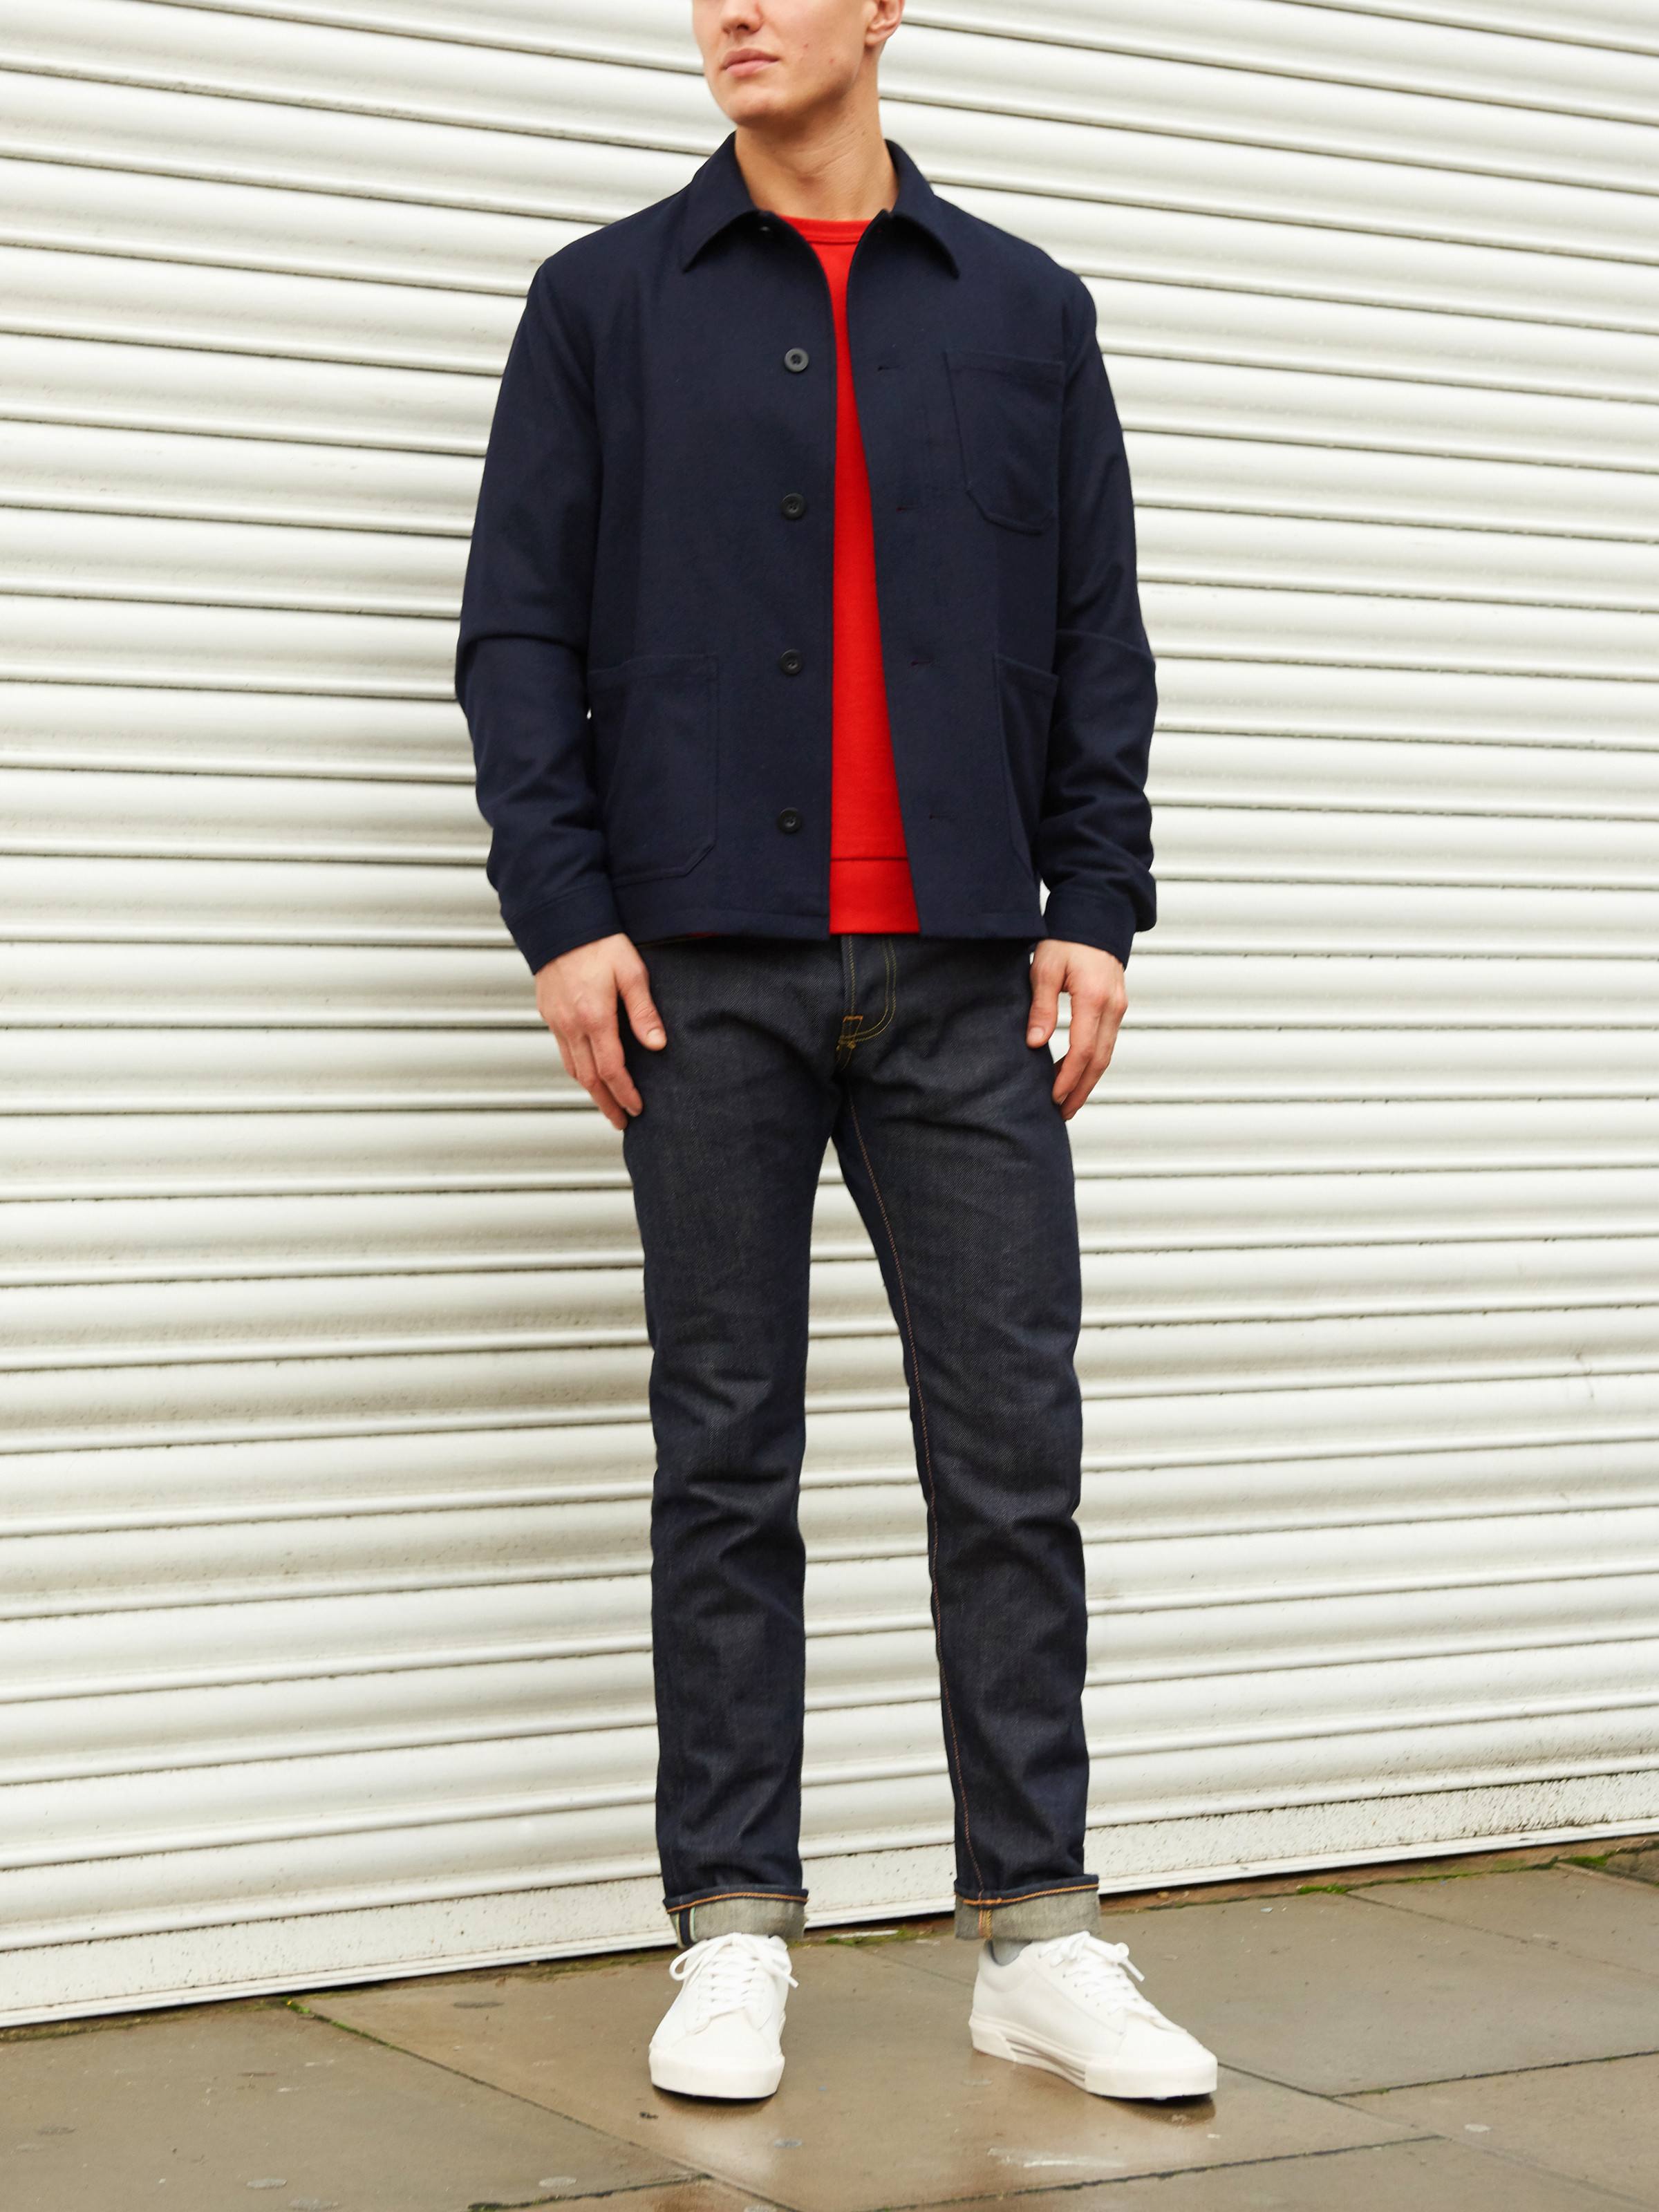 Men's outfit idea for 2021 with utility jacket, bold-colored sweatshirt, dark blue jeans, white sneakers. Suitable for spring and fall.